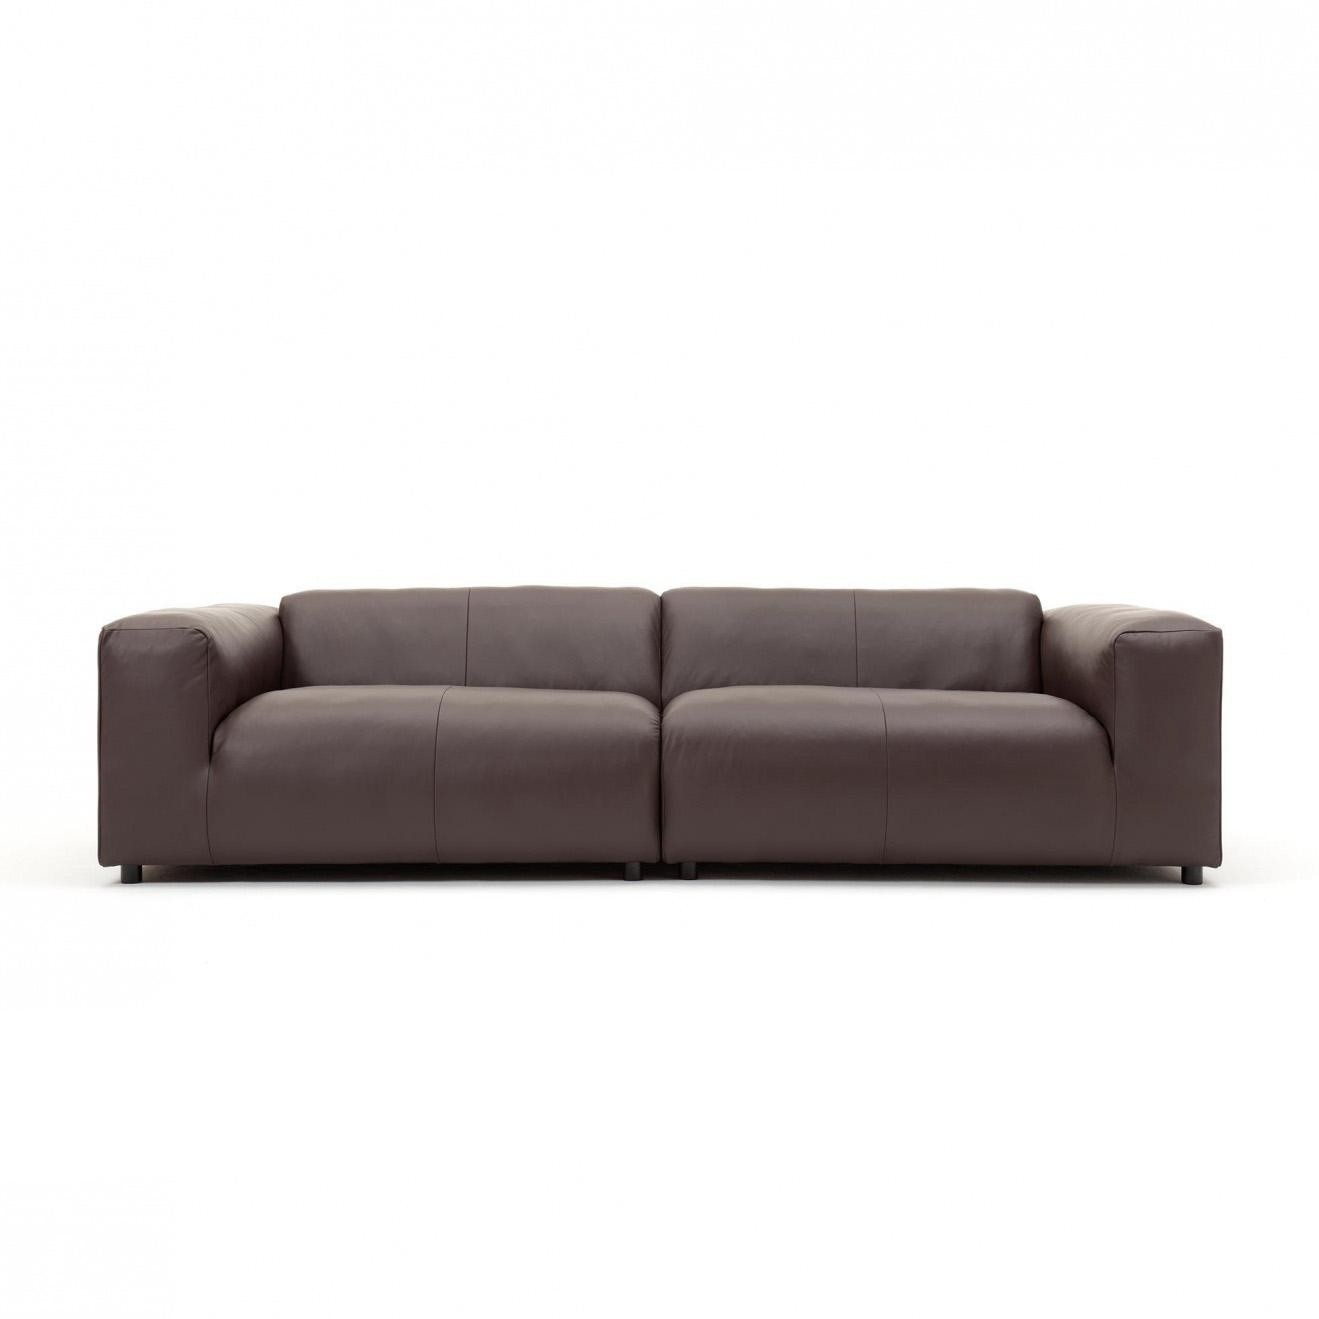 Rolf Benz Sofa Freistil Freistil 187 3 Seater Leather Sofa